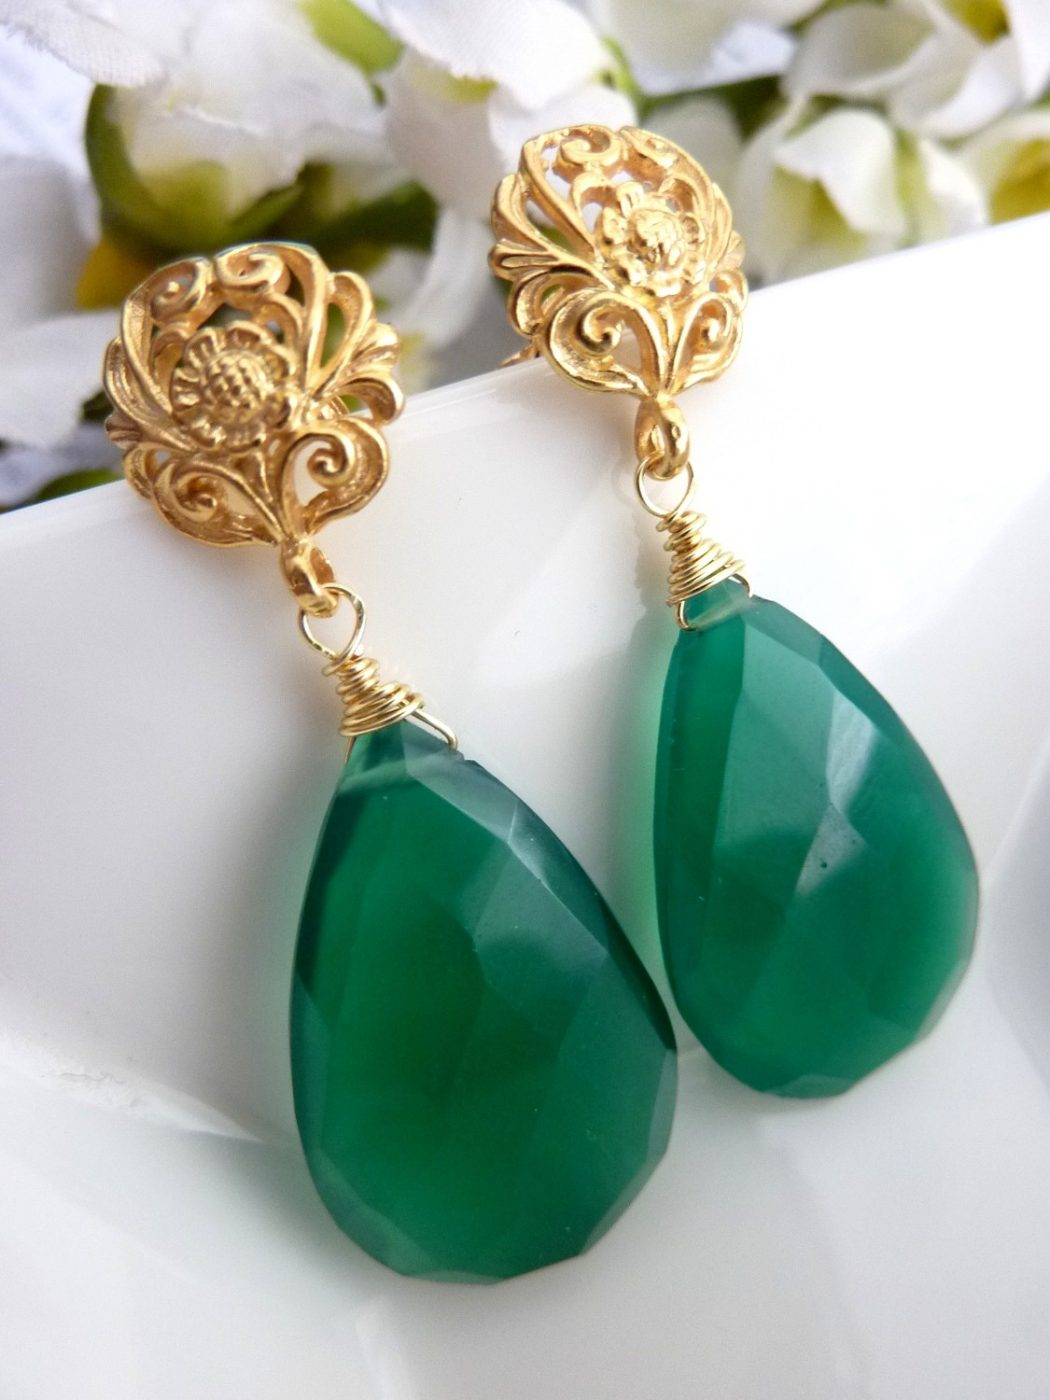 muehling ted jewelry august plated large green shop gold chip front earrings chips